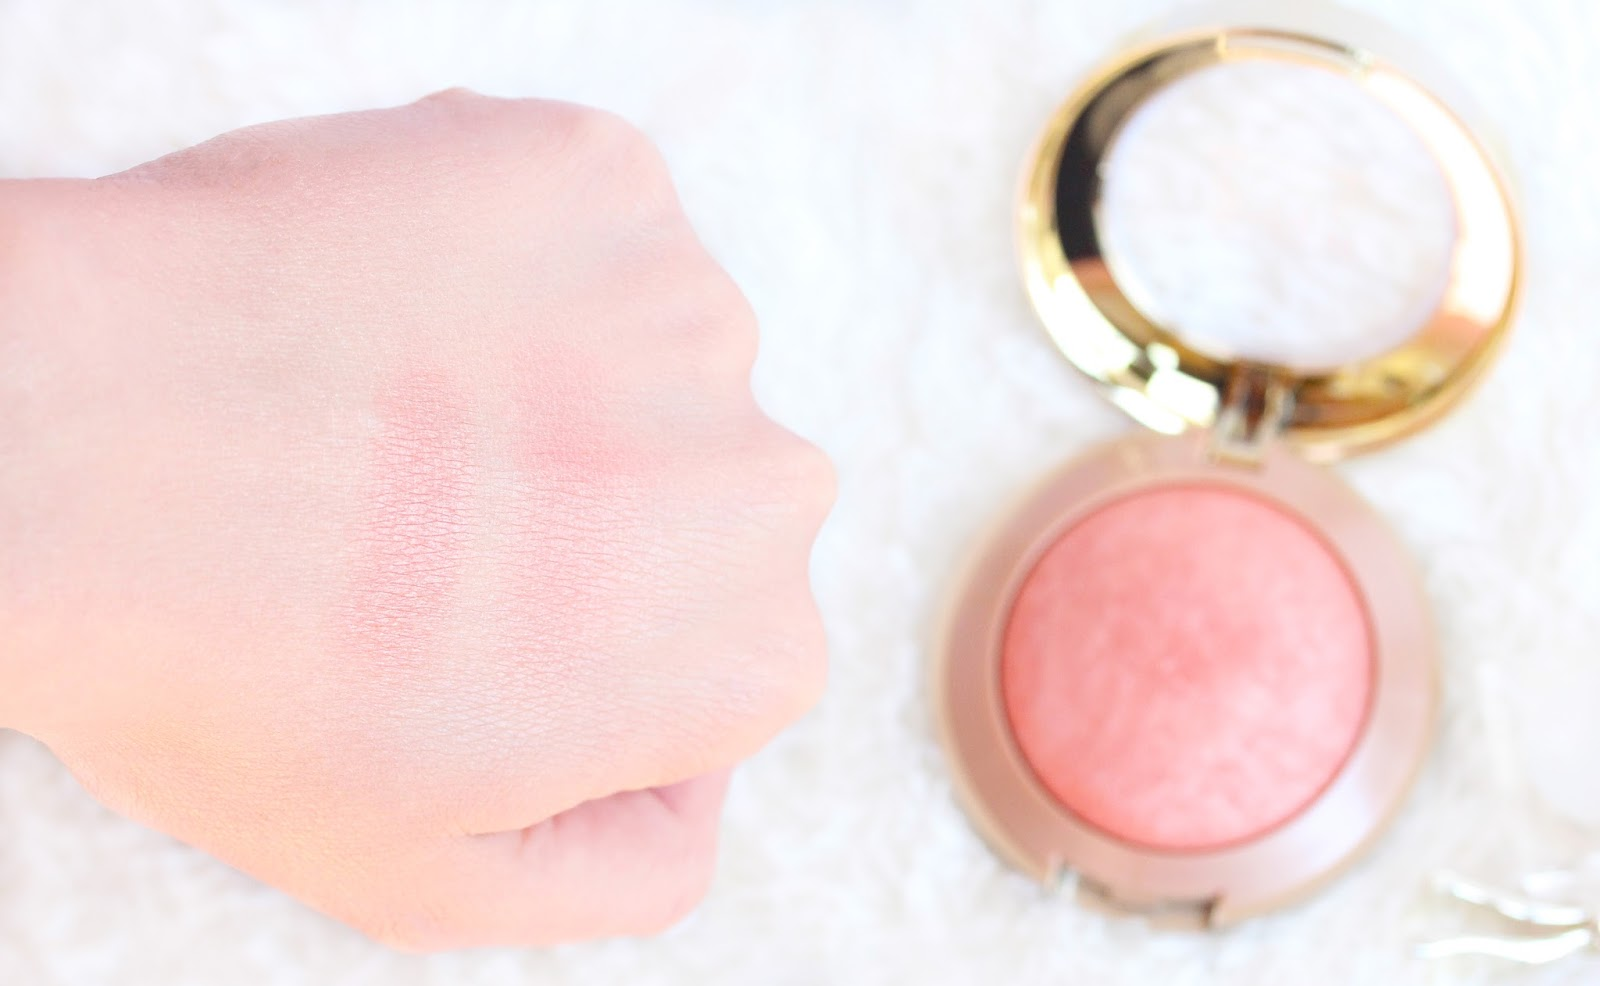 Milani Baked Blush in Luminoso Swatches